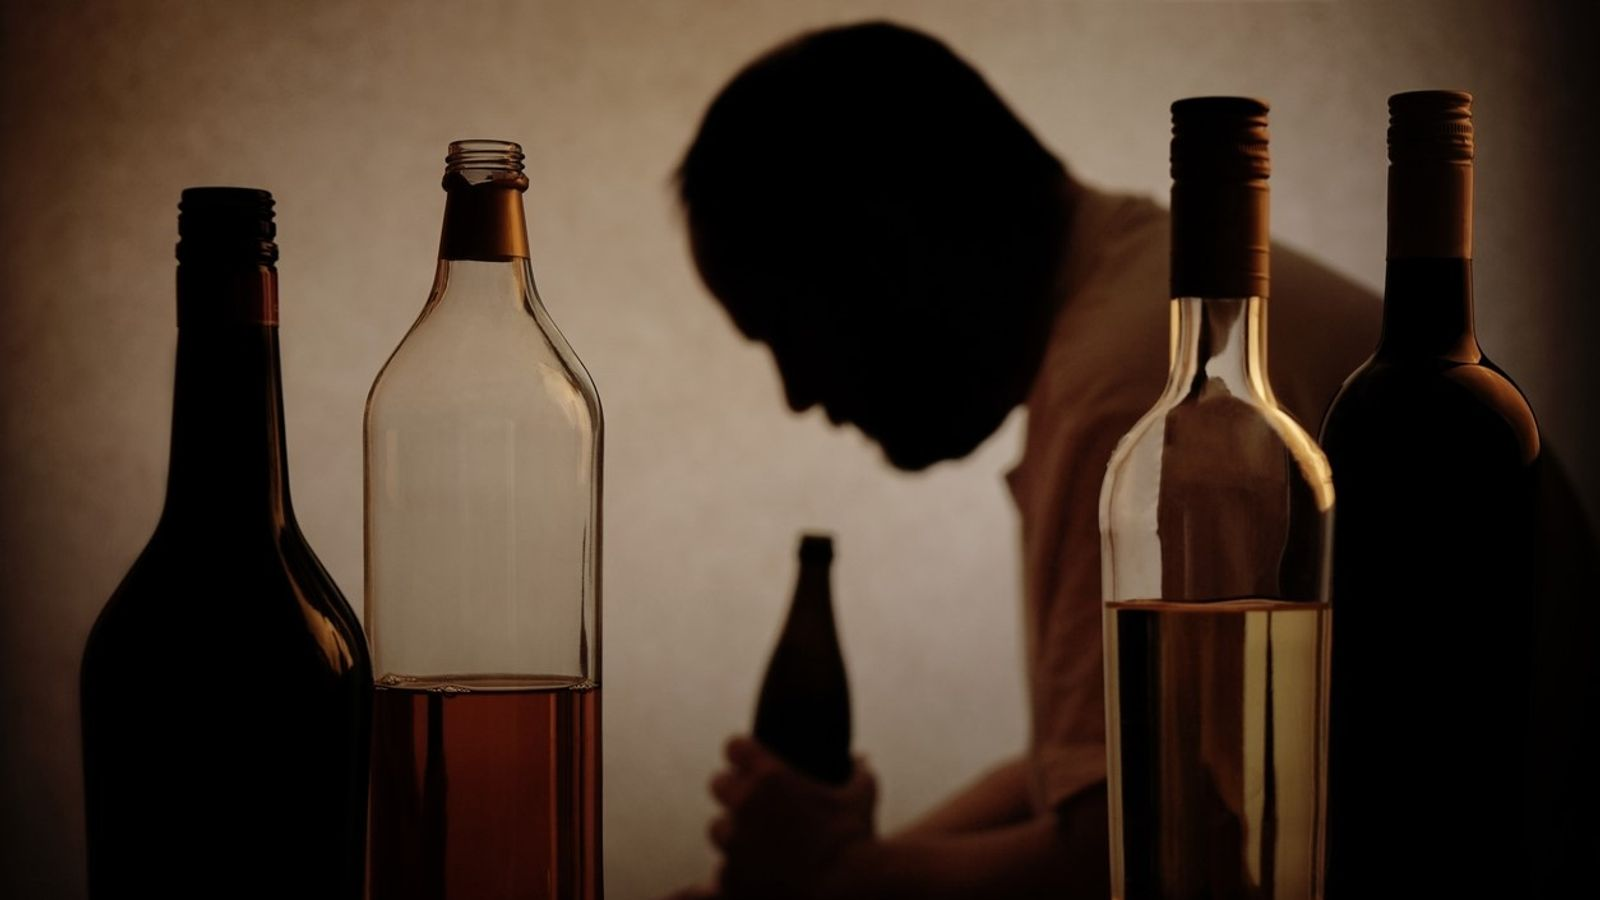 Suicide, drug abuSuicide, drug abuse and alcoholism linked to more middle-aged deaths than heart disease se and alcoholism linked to more middle-aged deaths than heart disease